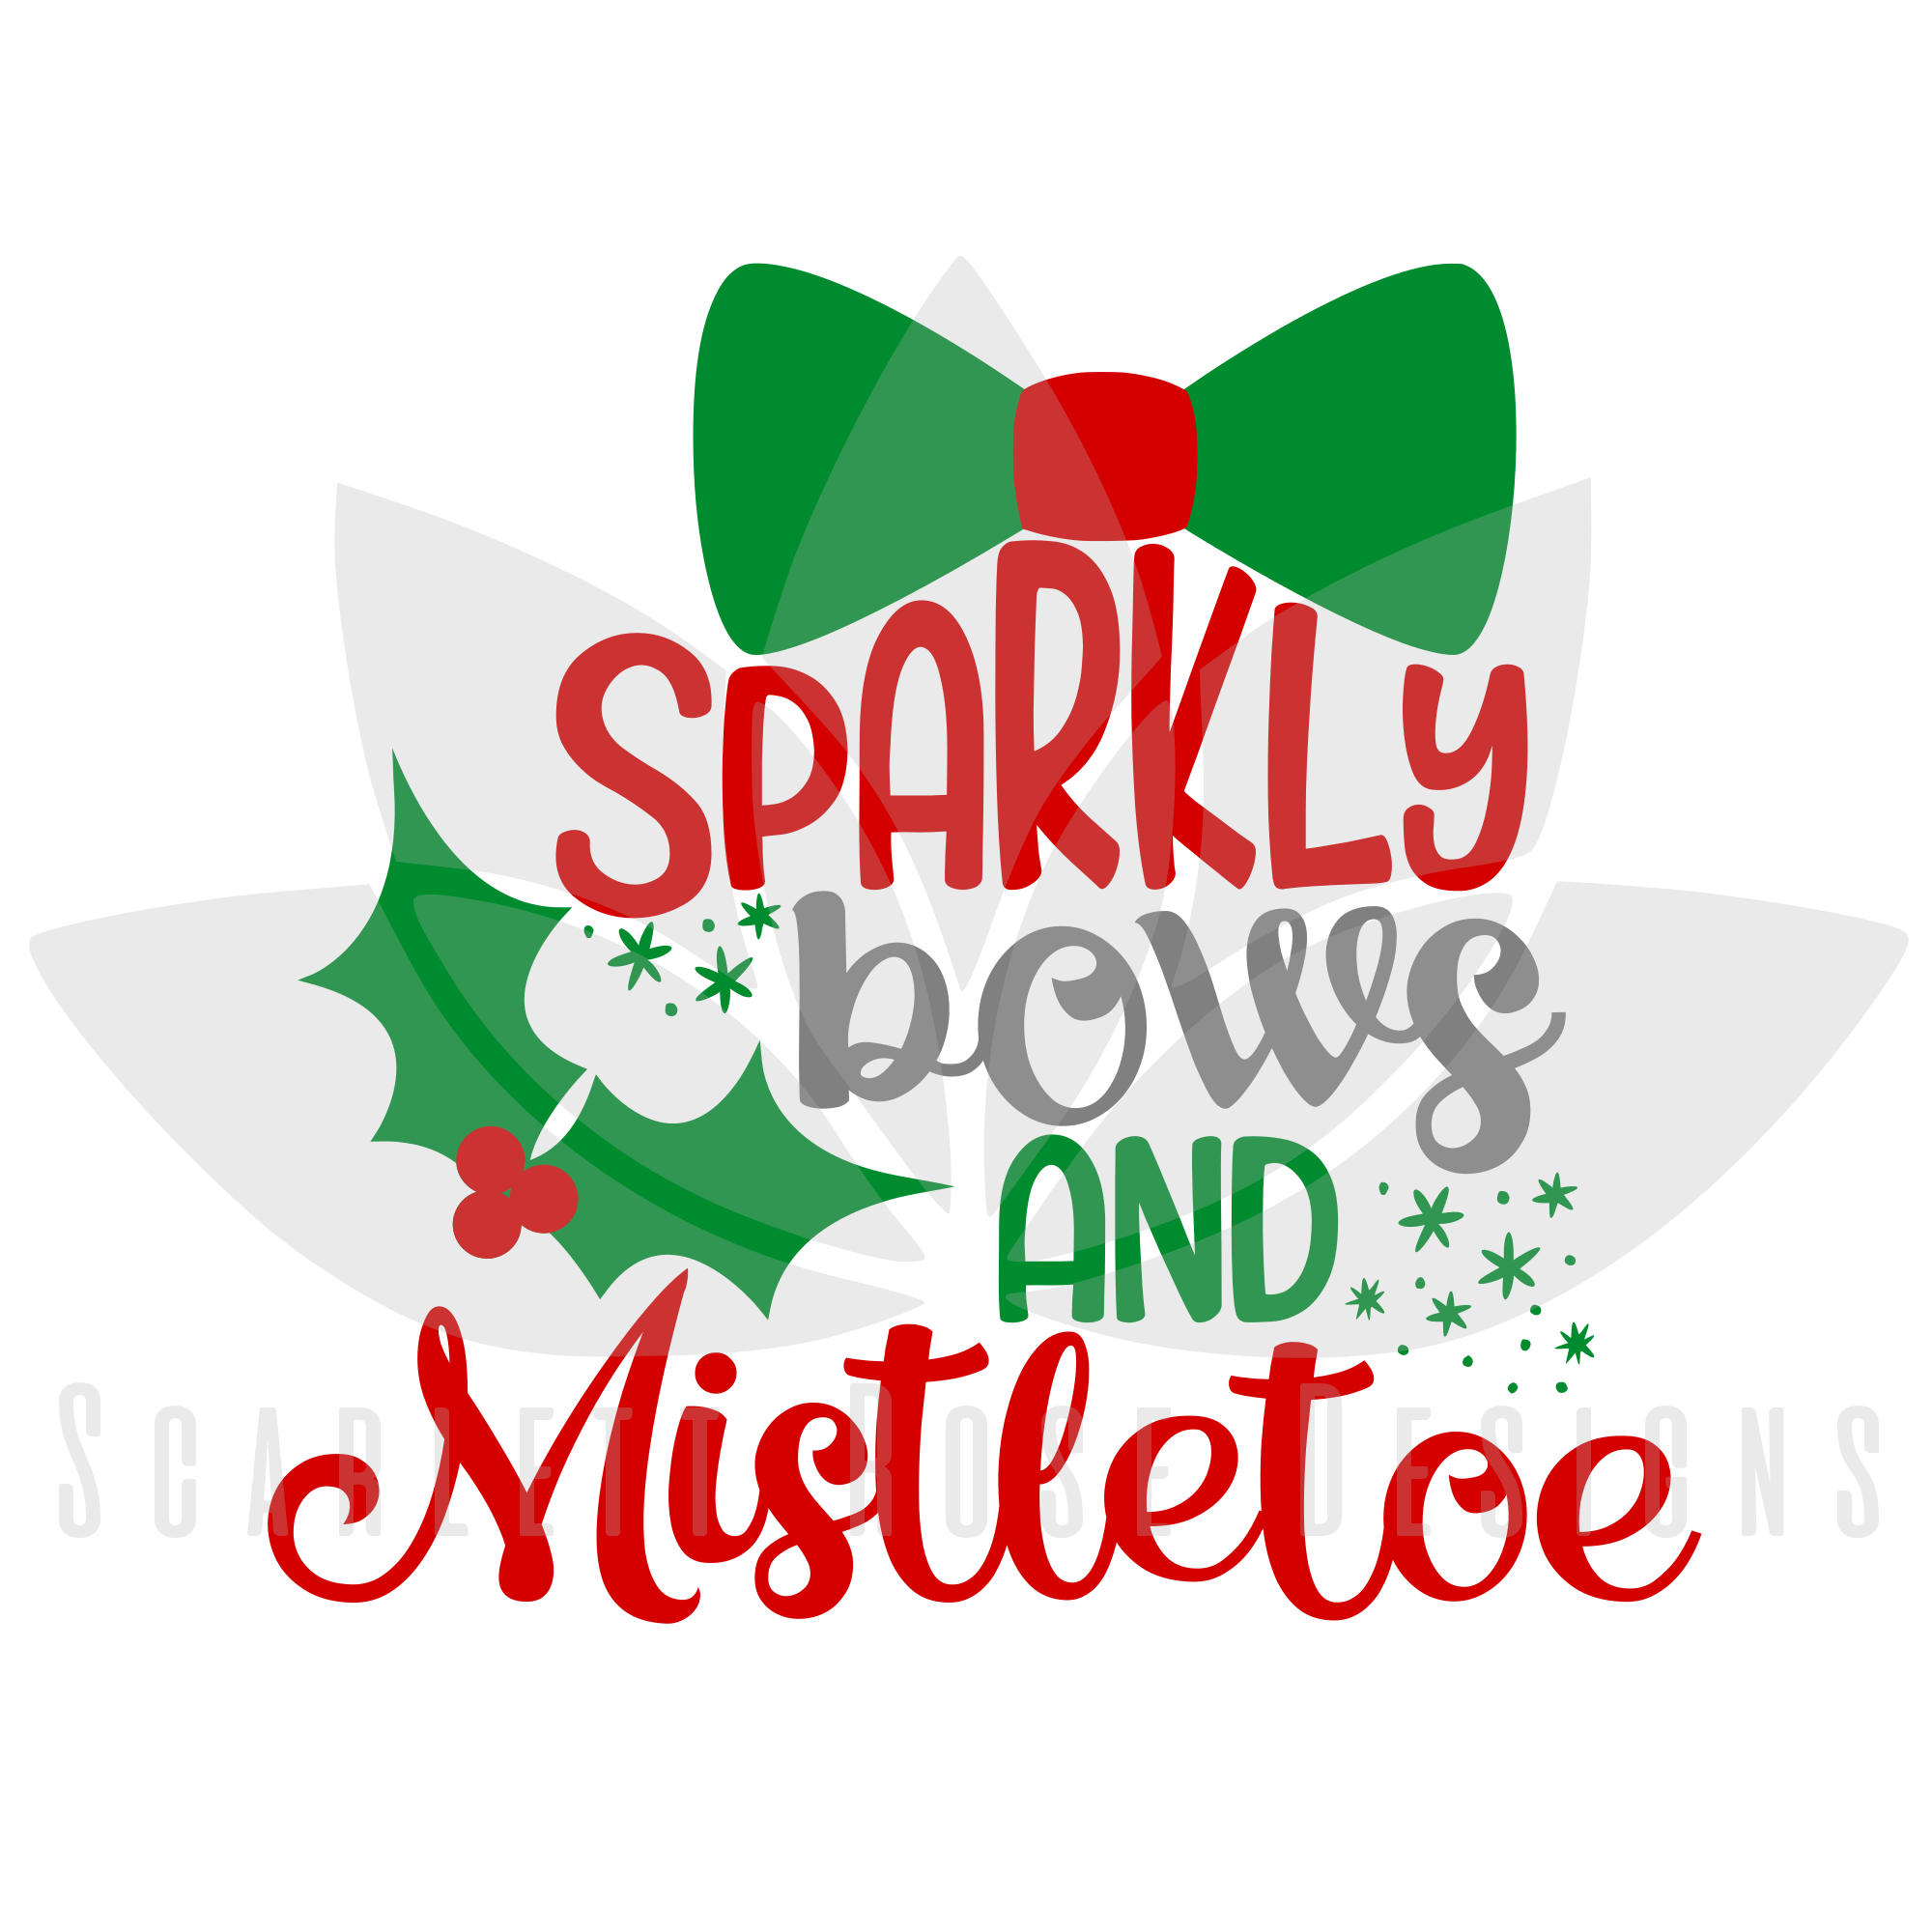 Christmas Bow Svg.Sparkly Bows And Mistletoe Svg